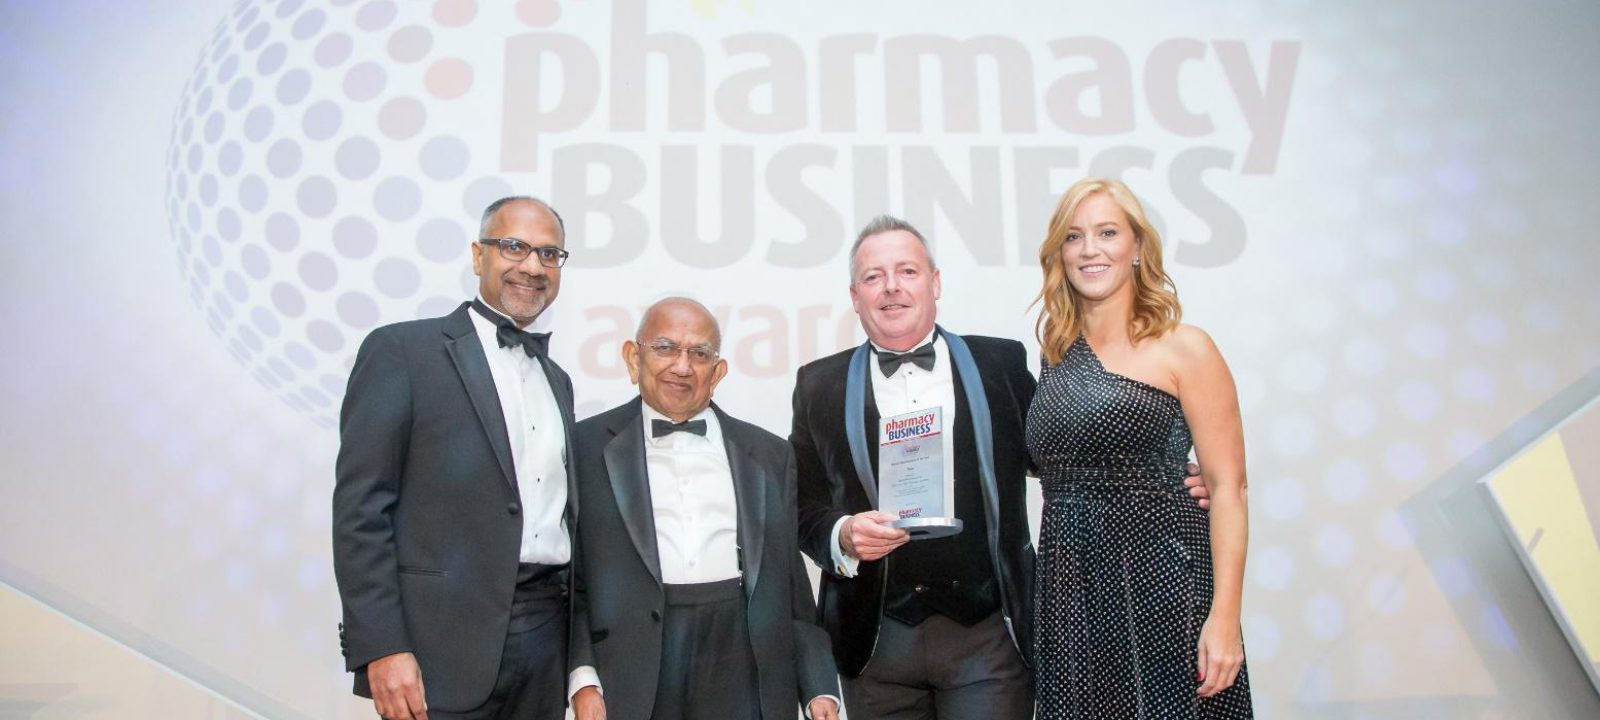 Teva named UK Generics Manufacturer of the Year for 17th consecutive year